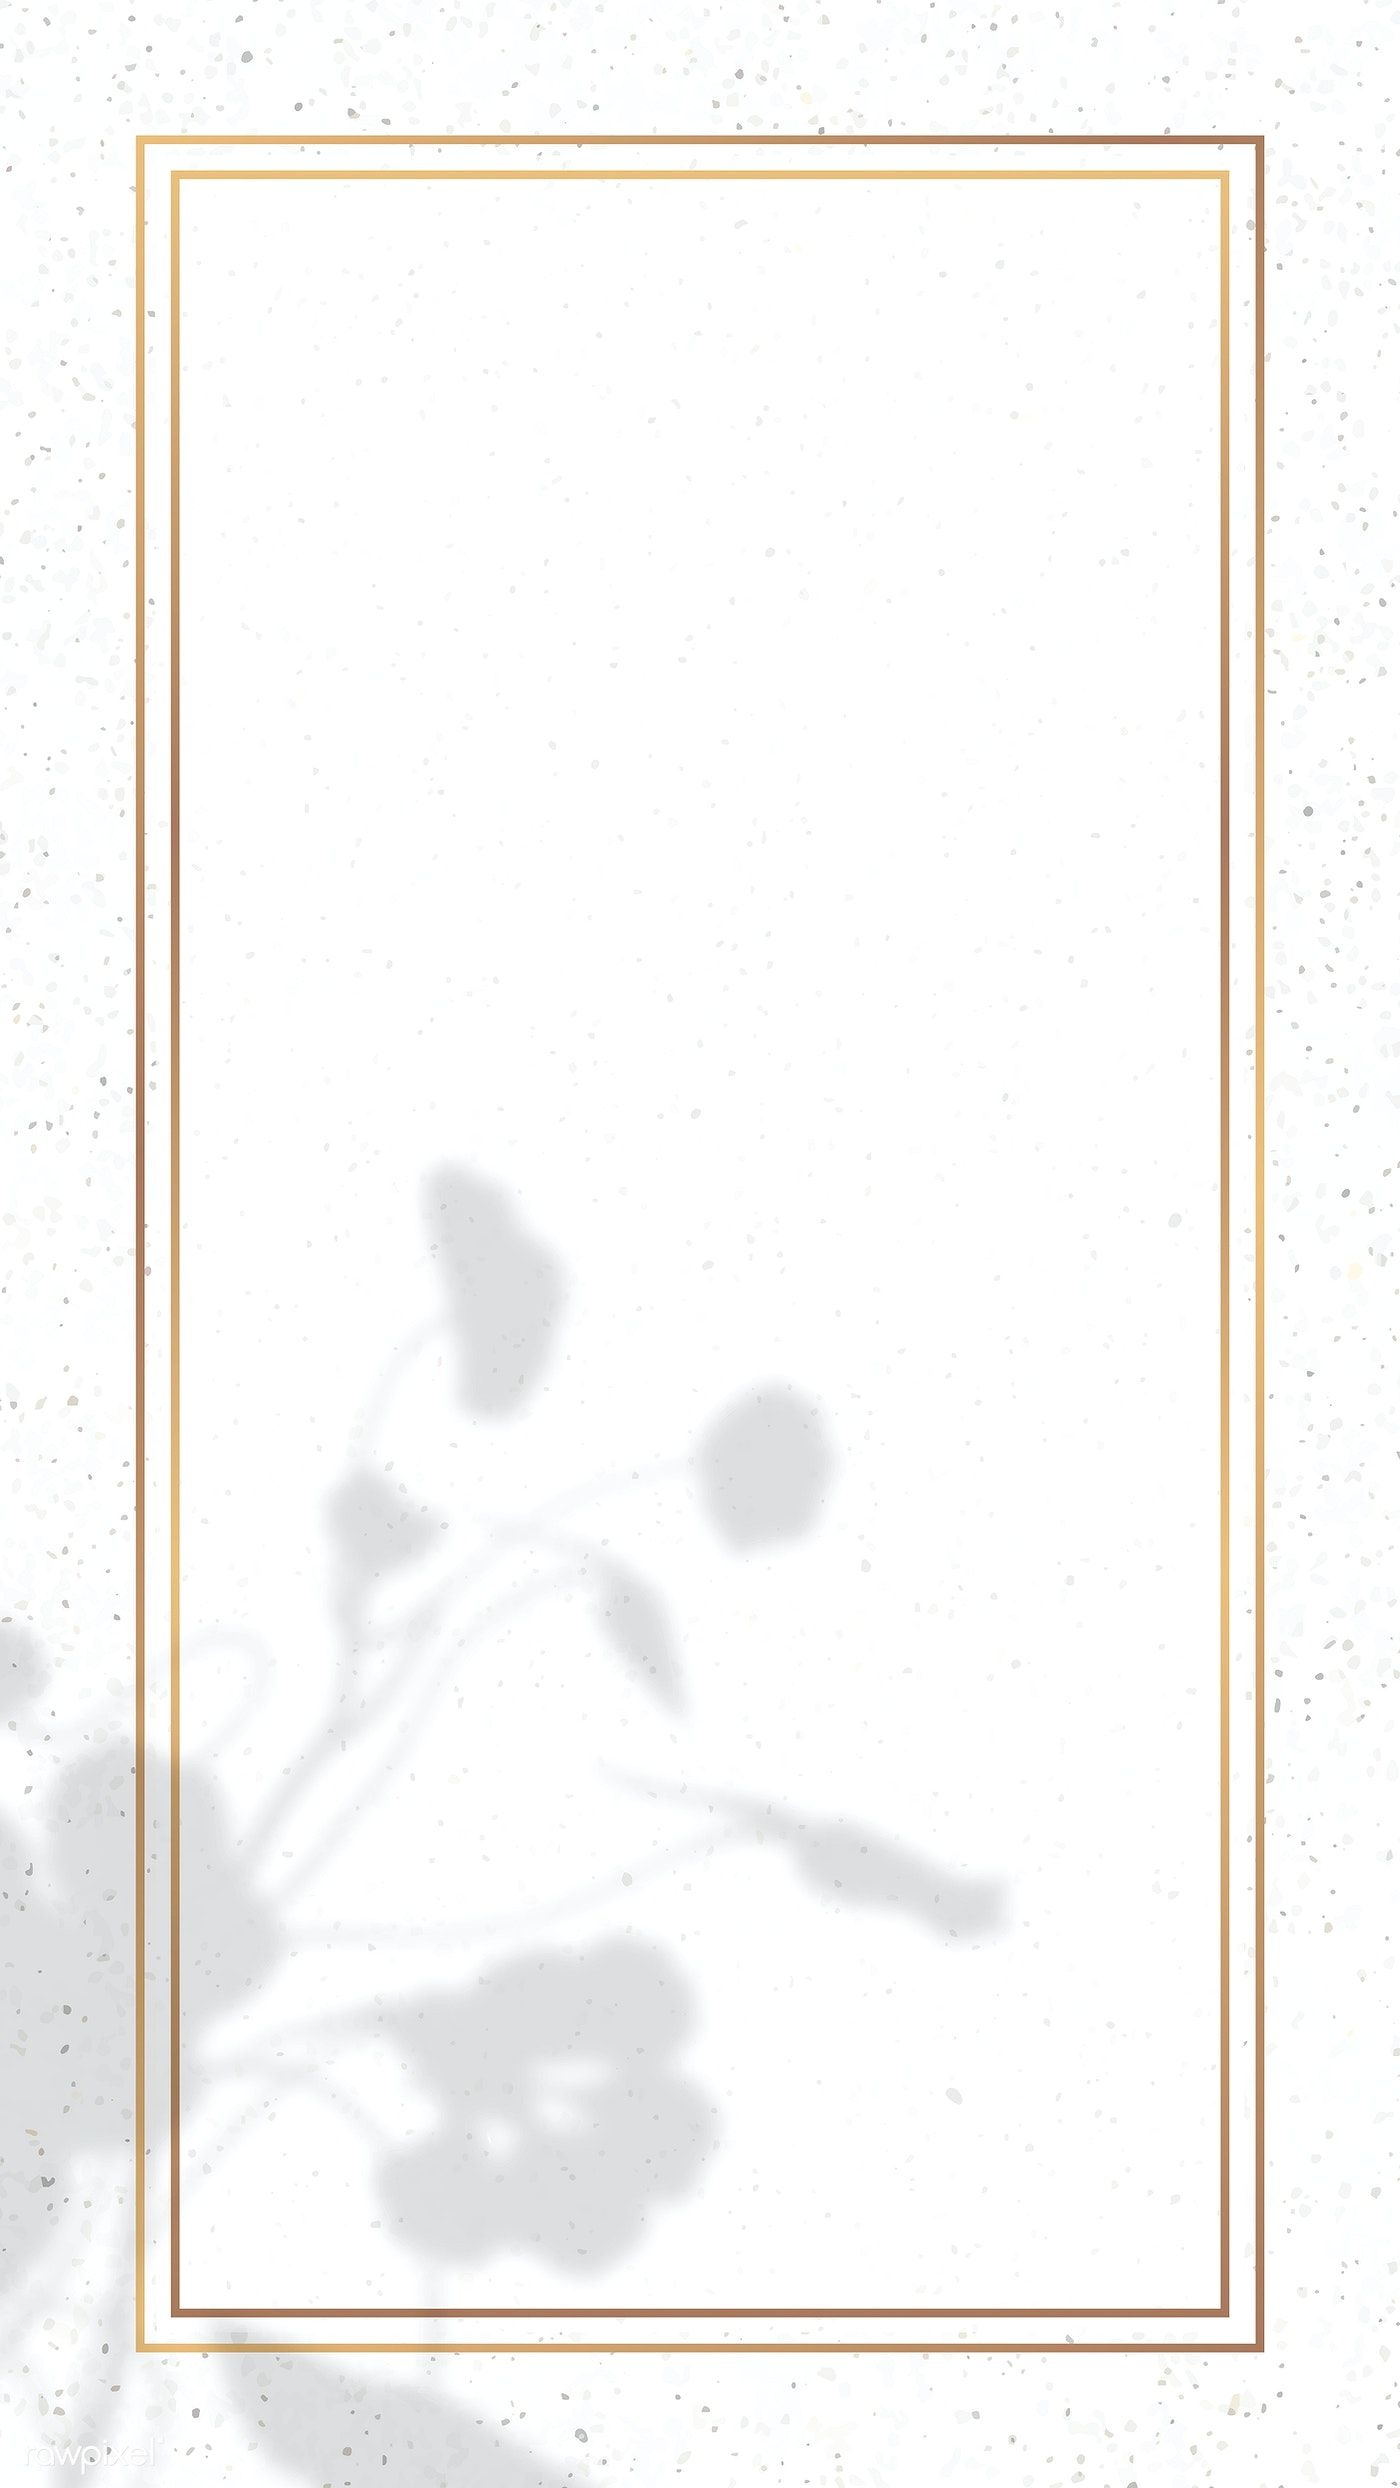 Rectangle Gold Frame With Floral Shadow On White Marble Background Vector Premium Image By Rawpixel Gold Frame Phone Wallpaper Design White Marble Background